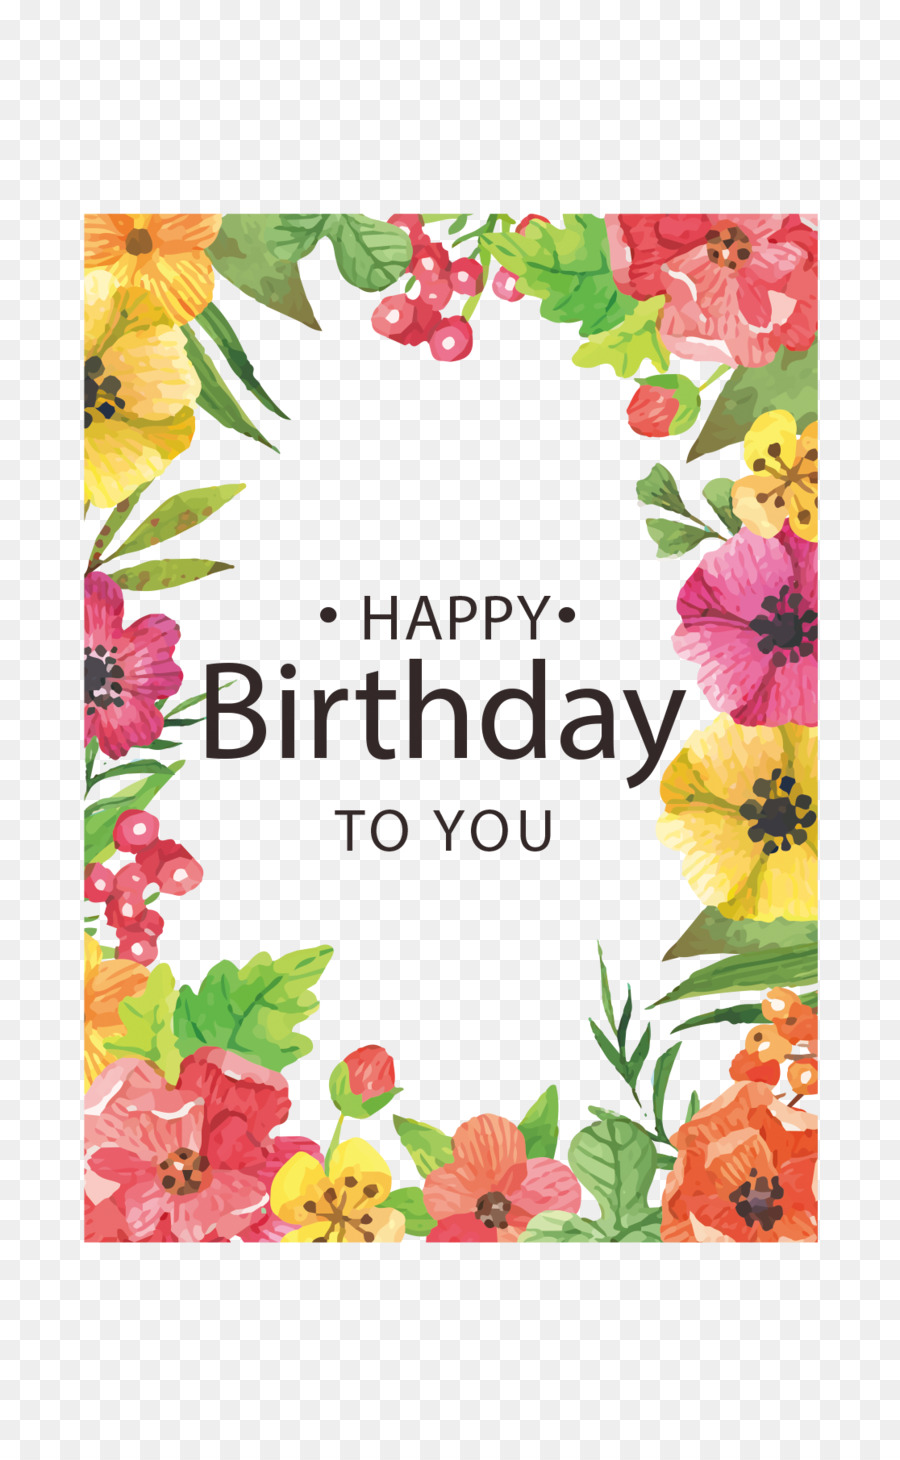 birthday greeting card clip art happy birthday birthday card colored flowers - Happy Birthday Cards Flowers